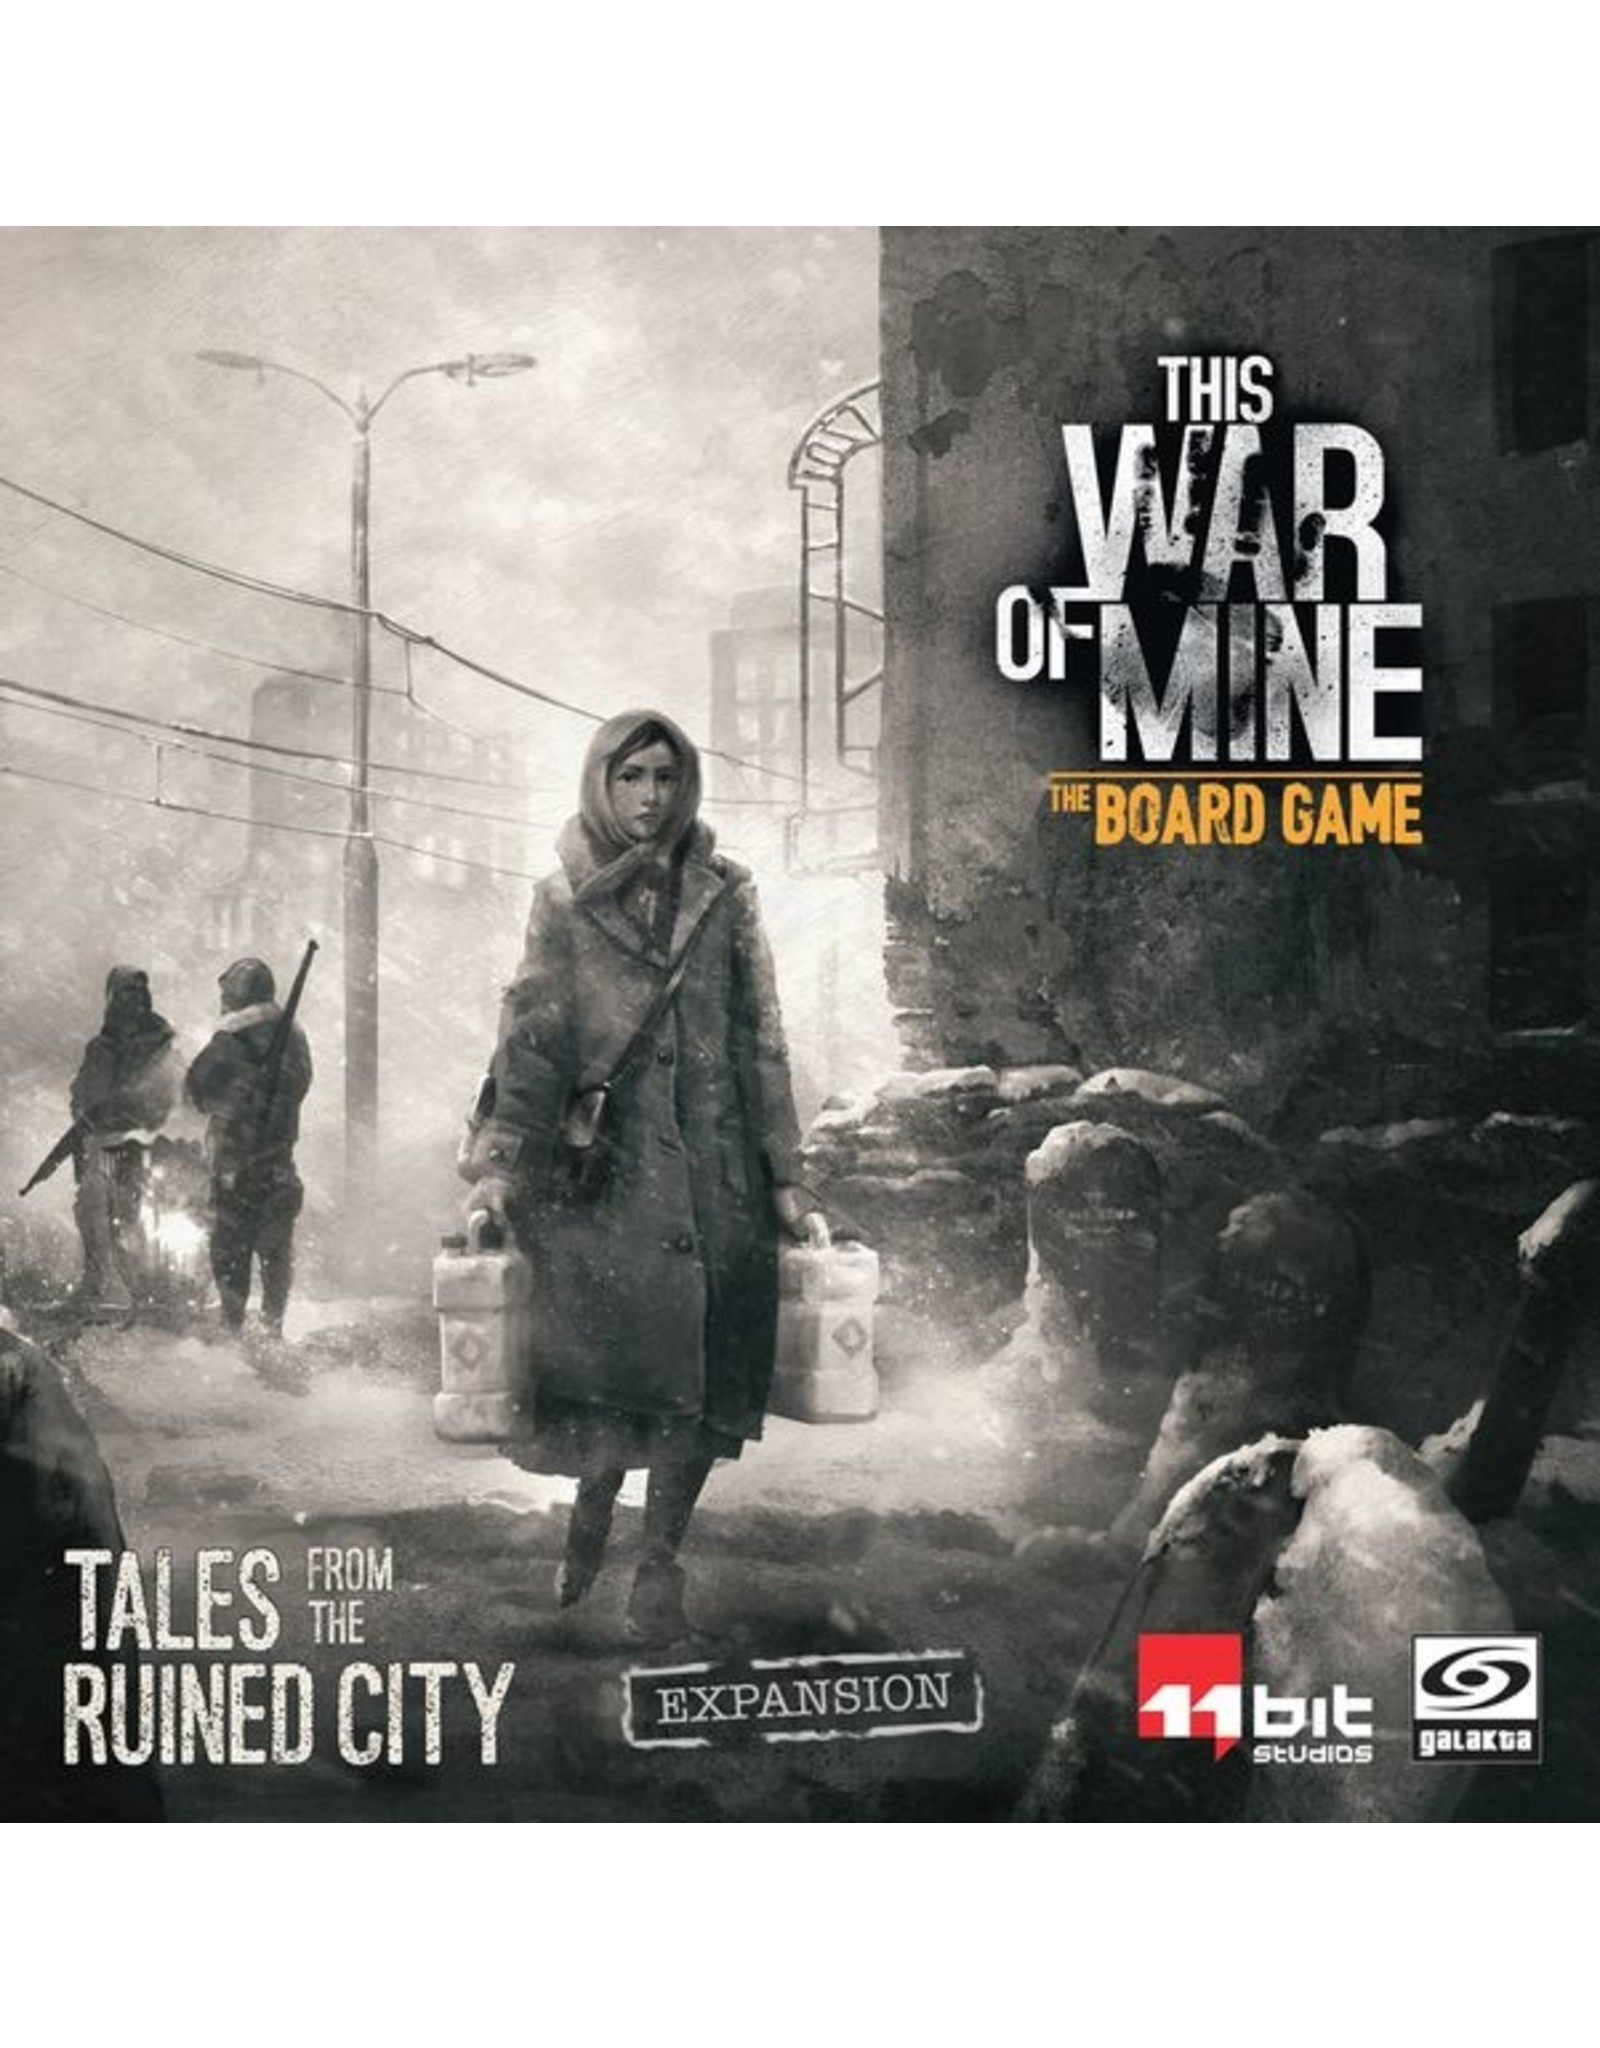 GALAKTA THIS WAR OF MINE TALES FROM THE RUINED CITY EXPANSION